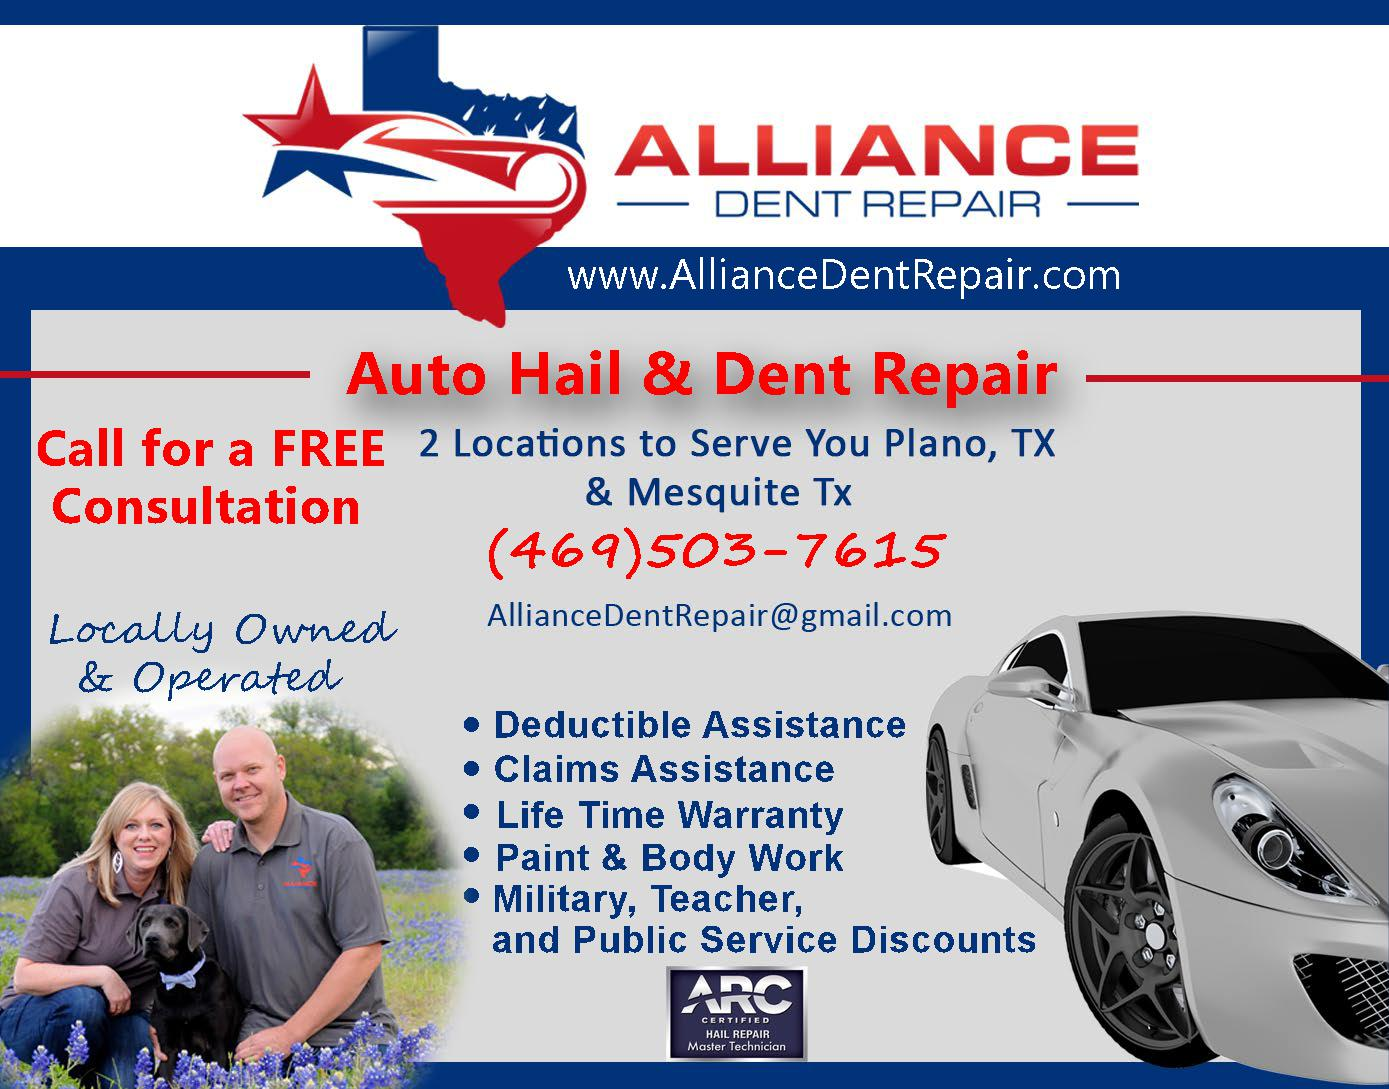 Alliance Dent Repair